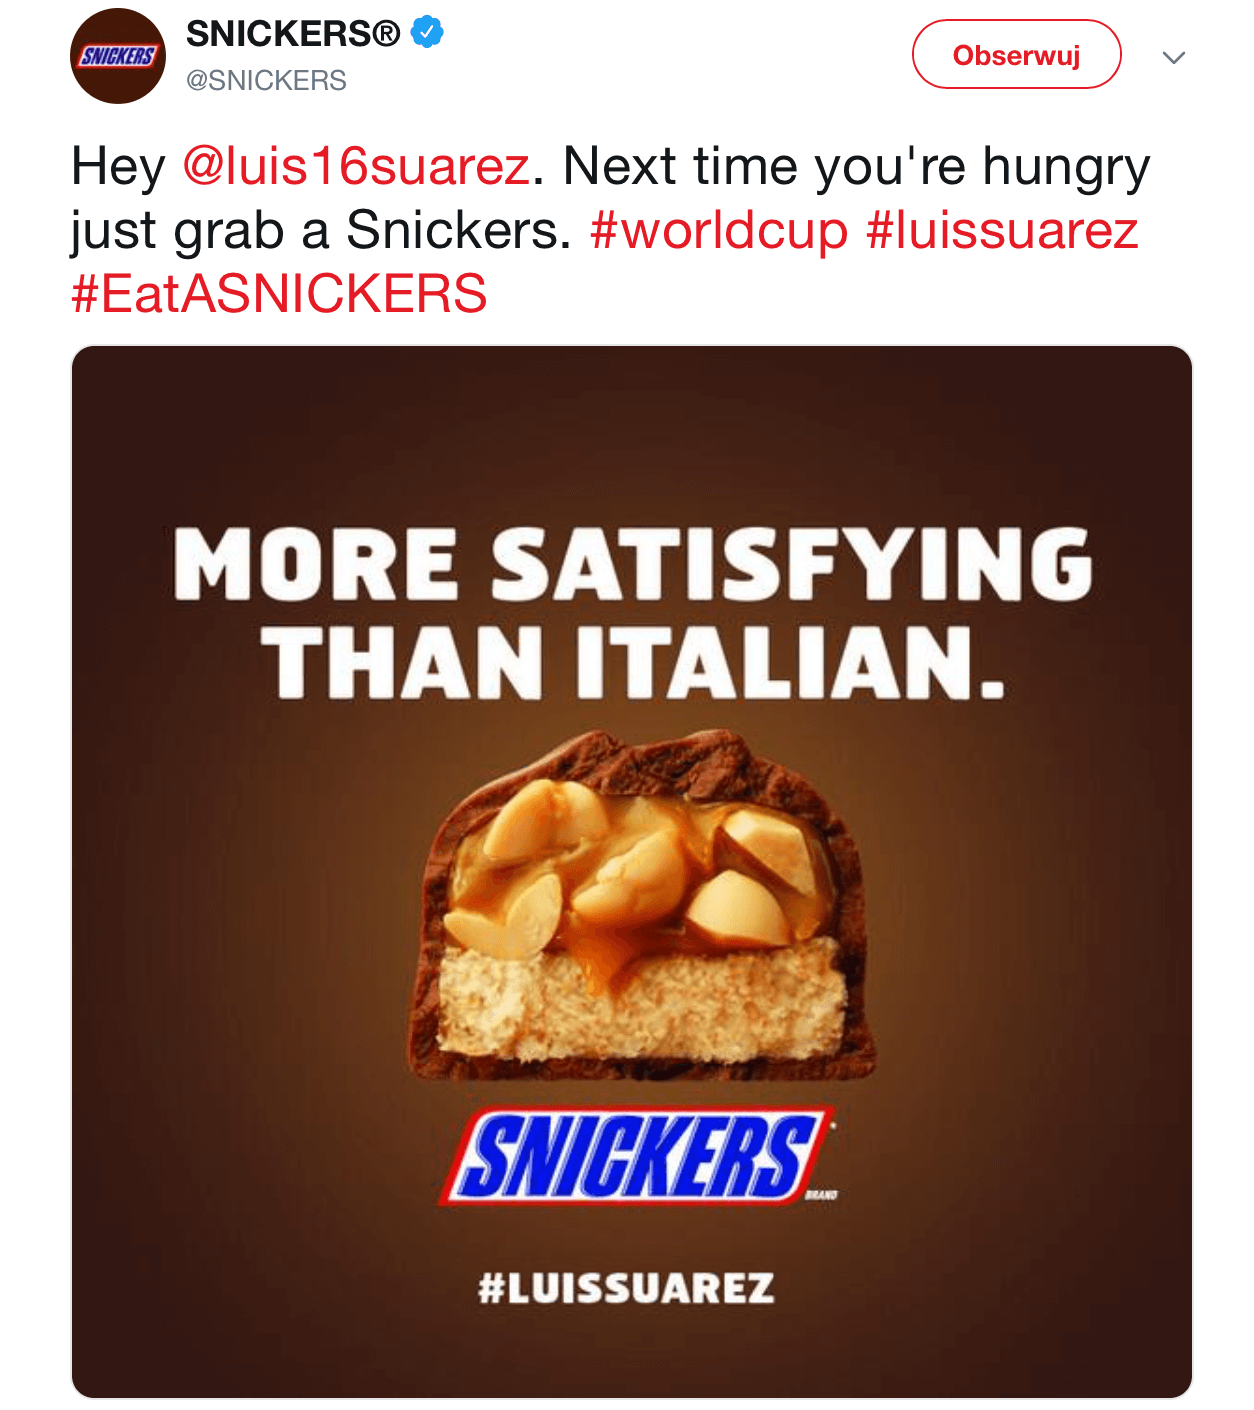 Real Time Marketing - Snickers